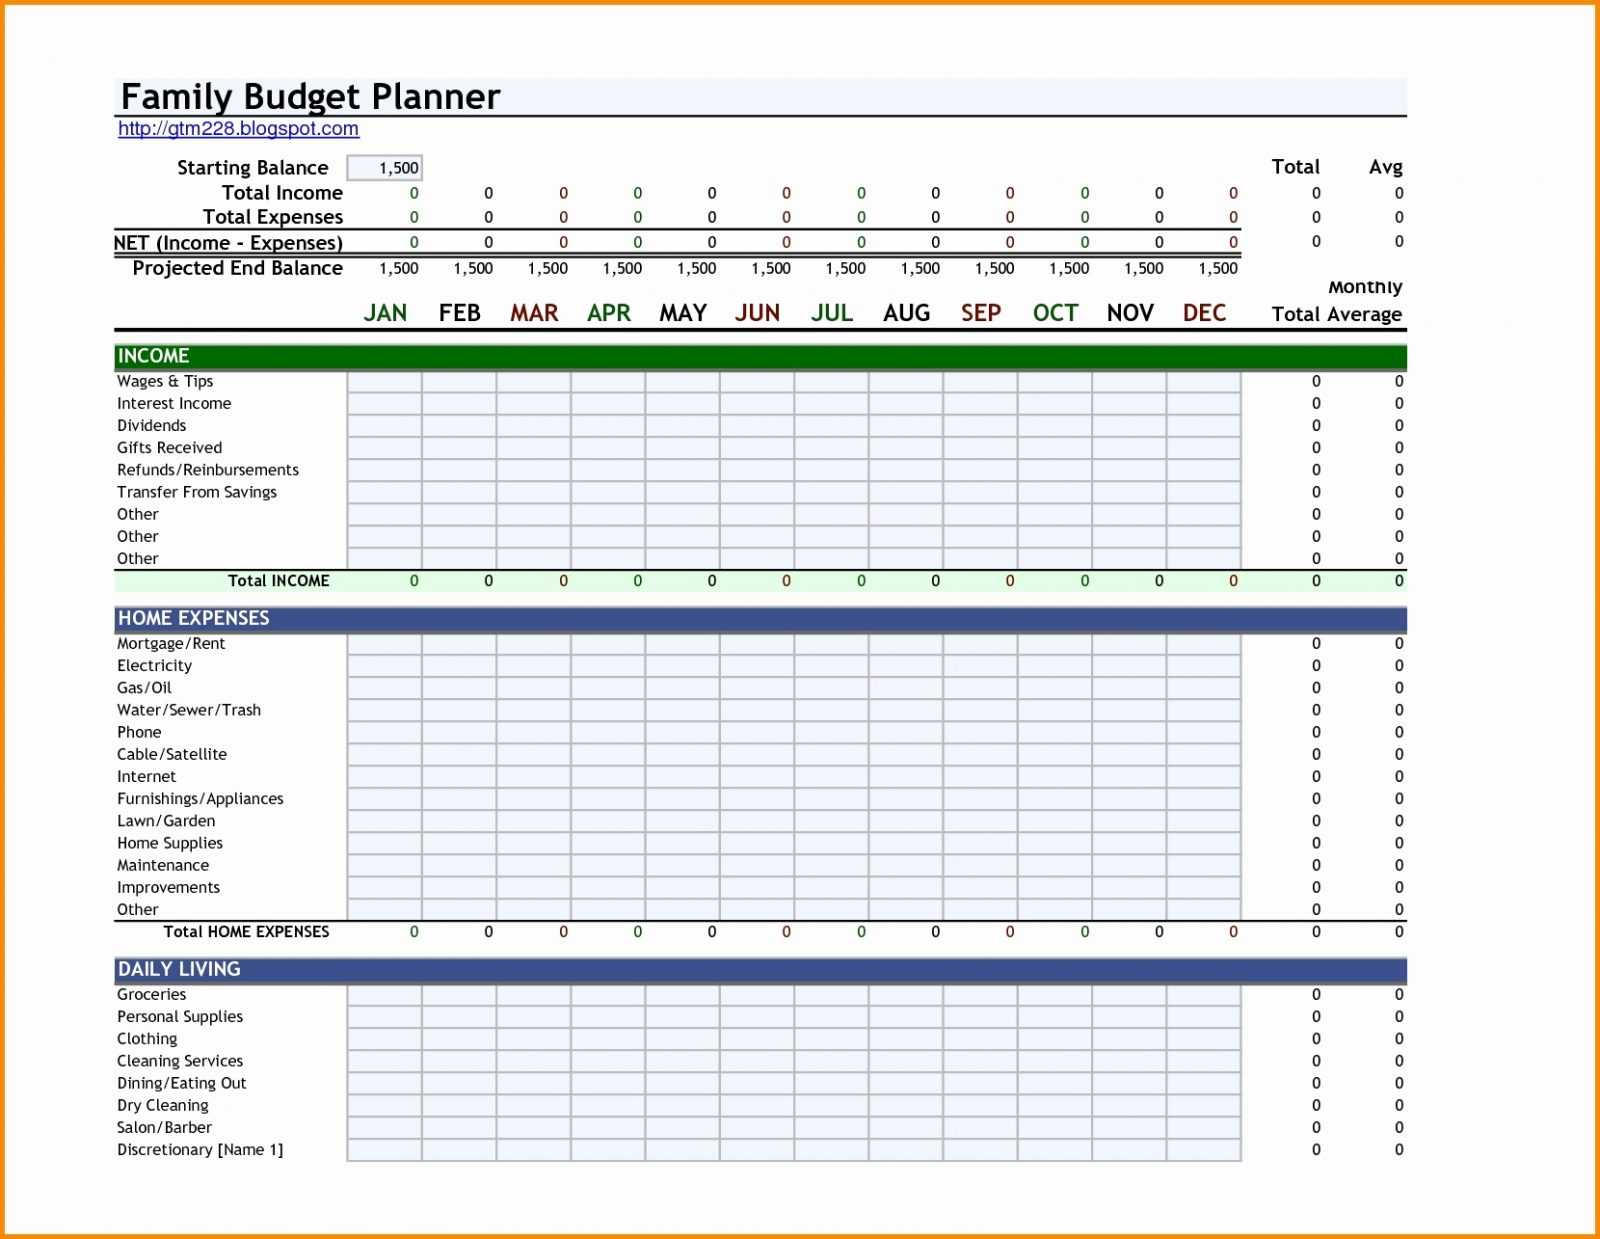 excel spreadsheet for tracking monthly bills excel spreadsheet for paying monthly bills Excel Spreadsheet Template For Monthly Bills free excel spreadsheet for monthly bills how to make an excel spreadsheet for monthly bills Excel Spreadsheet For Monthly Bills